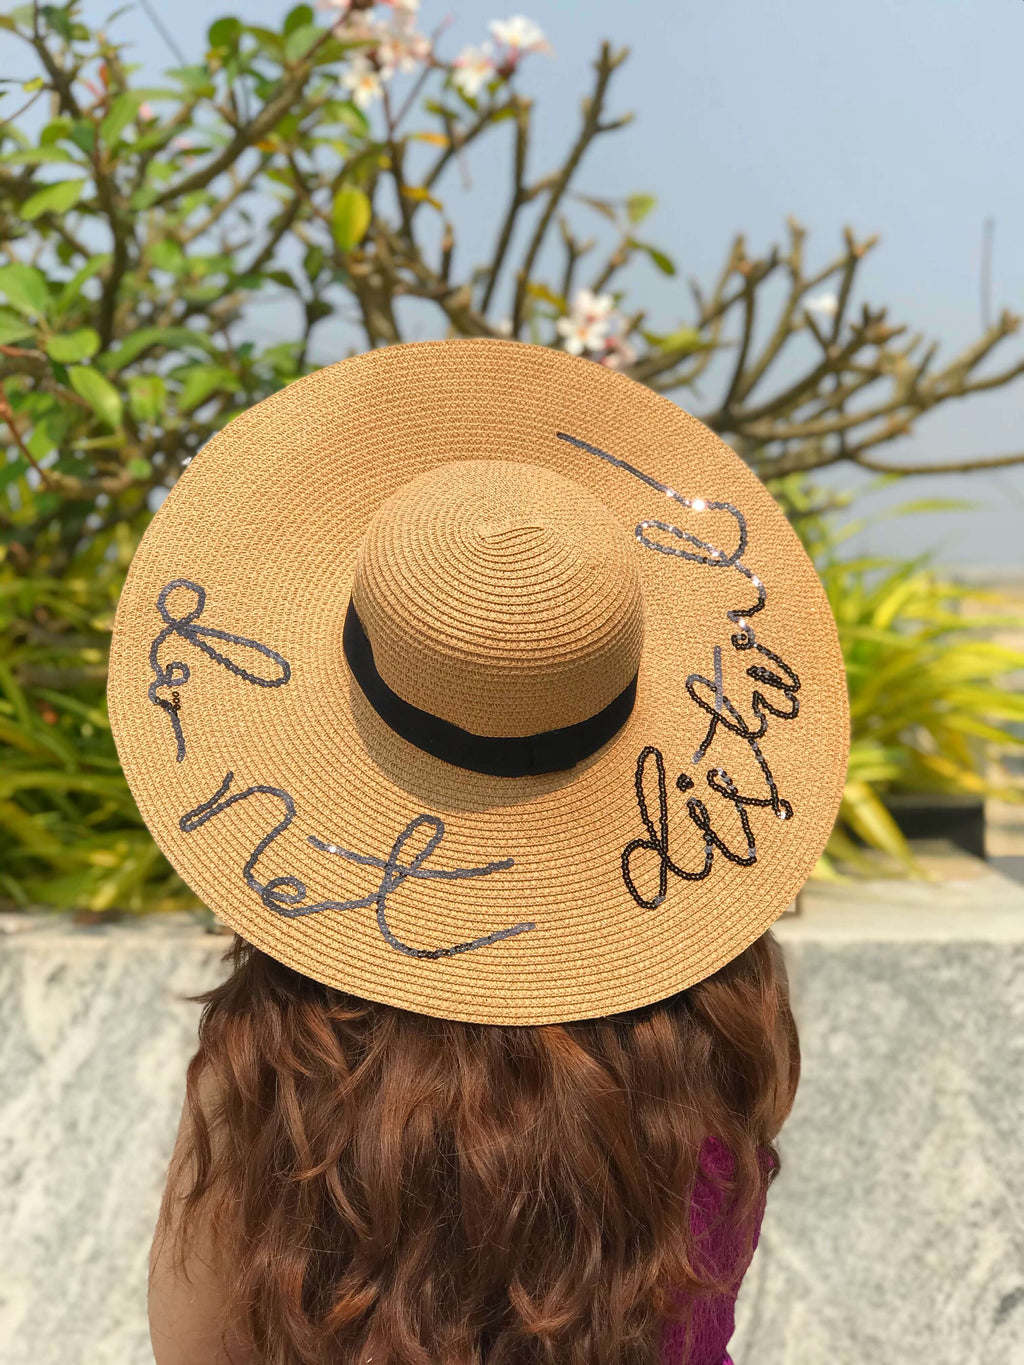 Do Not Disturb Hat: Tan